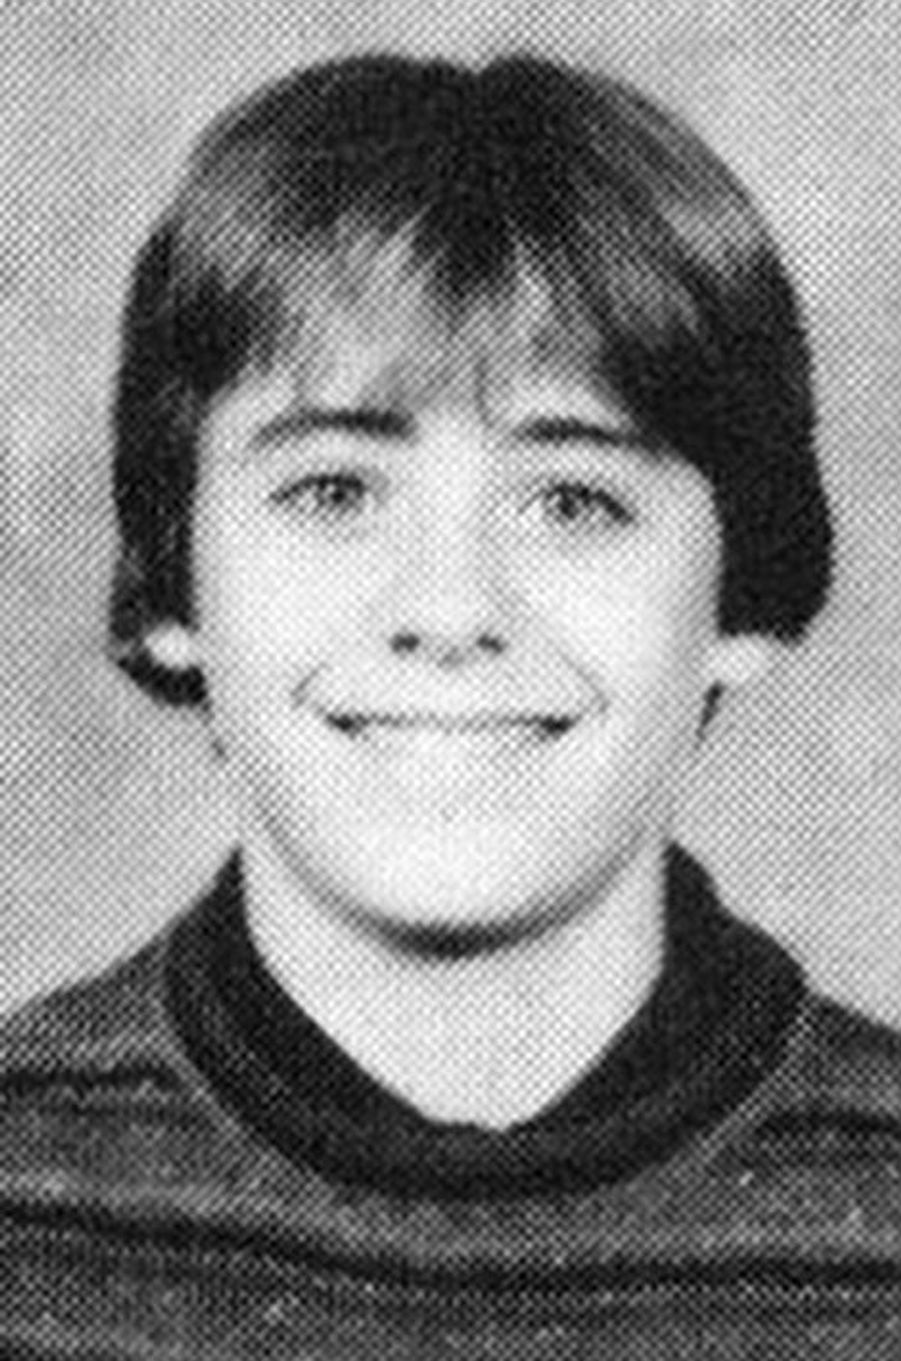 Jared Leto à la Flint Hill Preperatory School (1986)